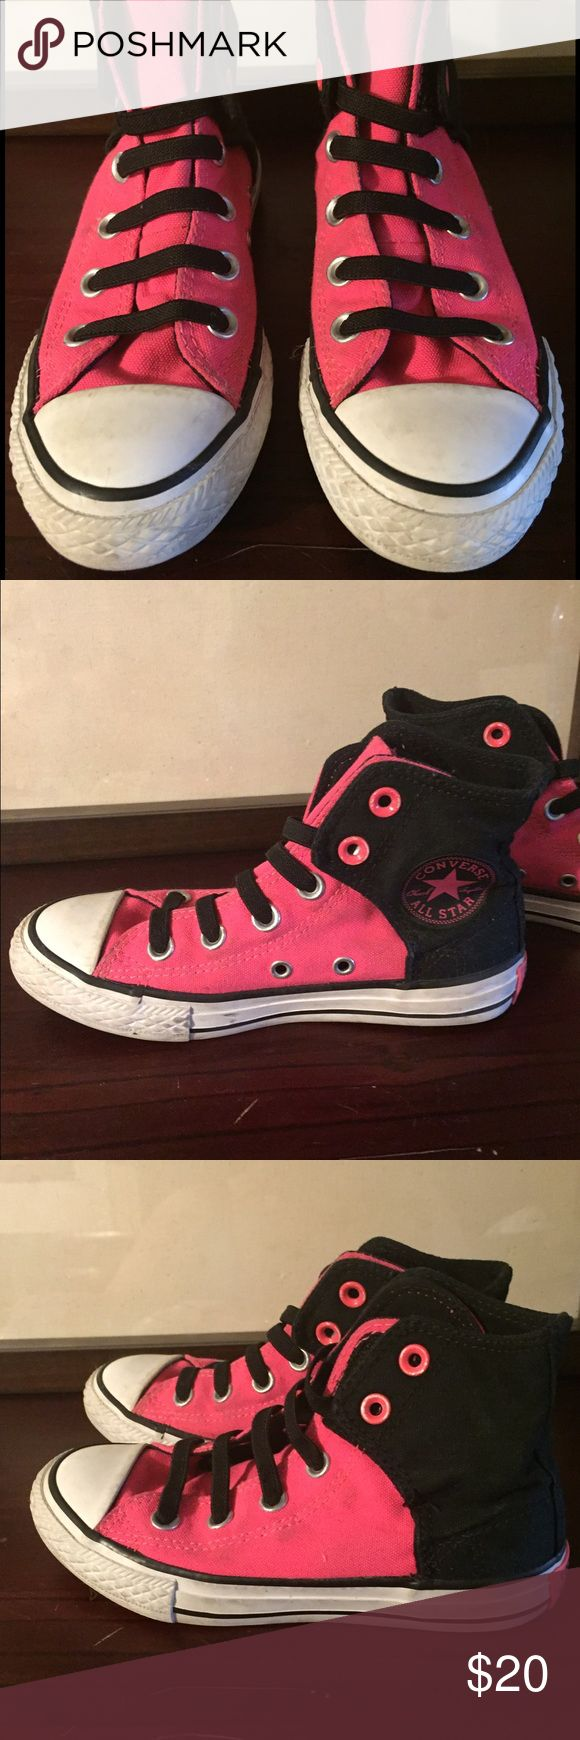 Pink and black converse girl Two tone converse for girls very good condition Converse Shoes Sneakers